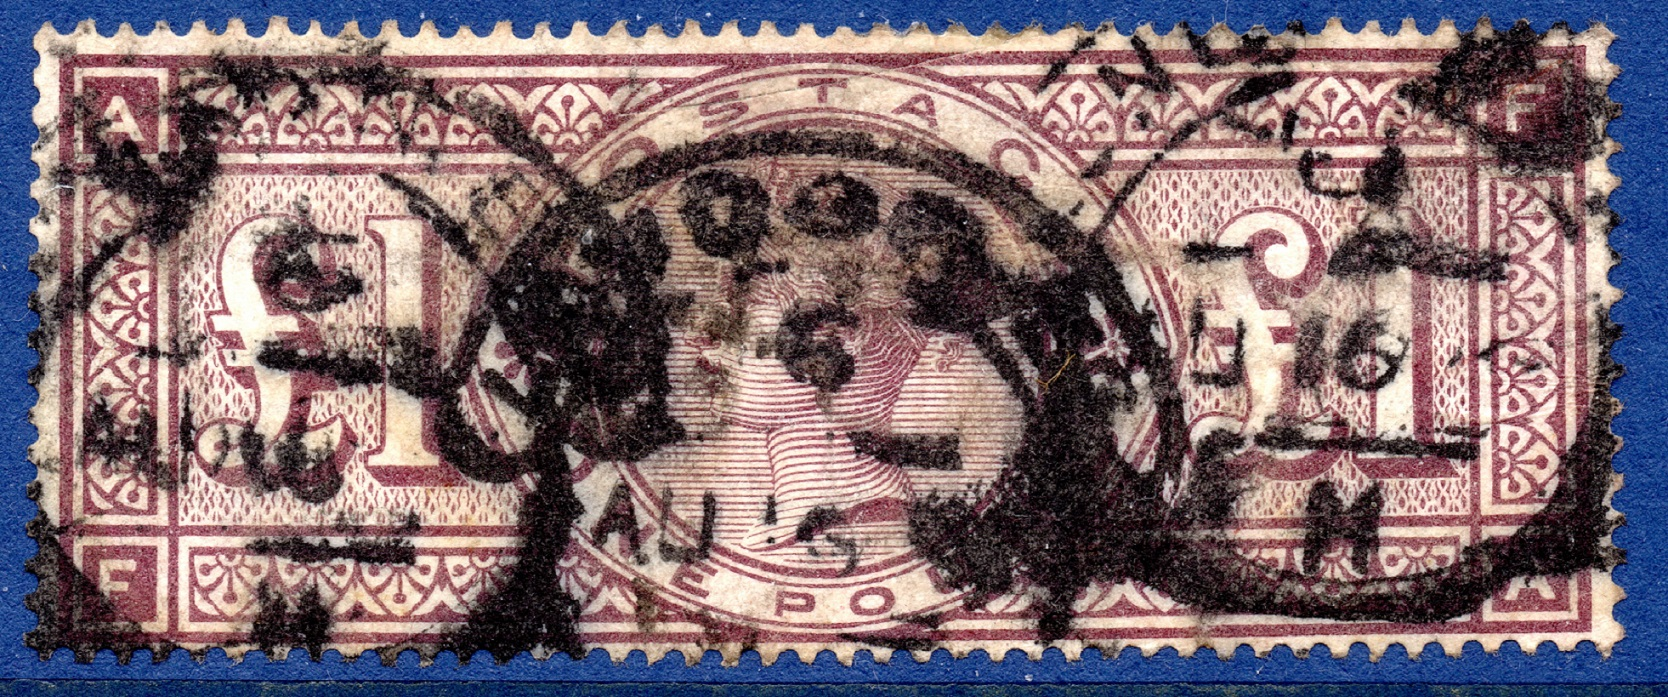 1888 £1 Brown-lilac on ORBS WATERMARK with Wonderful Original Colour. SG186 cat value £4250 - SOLD